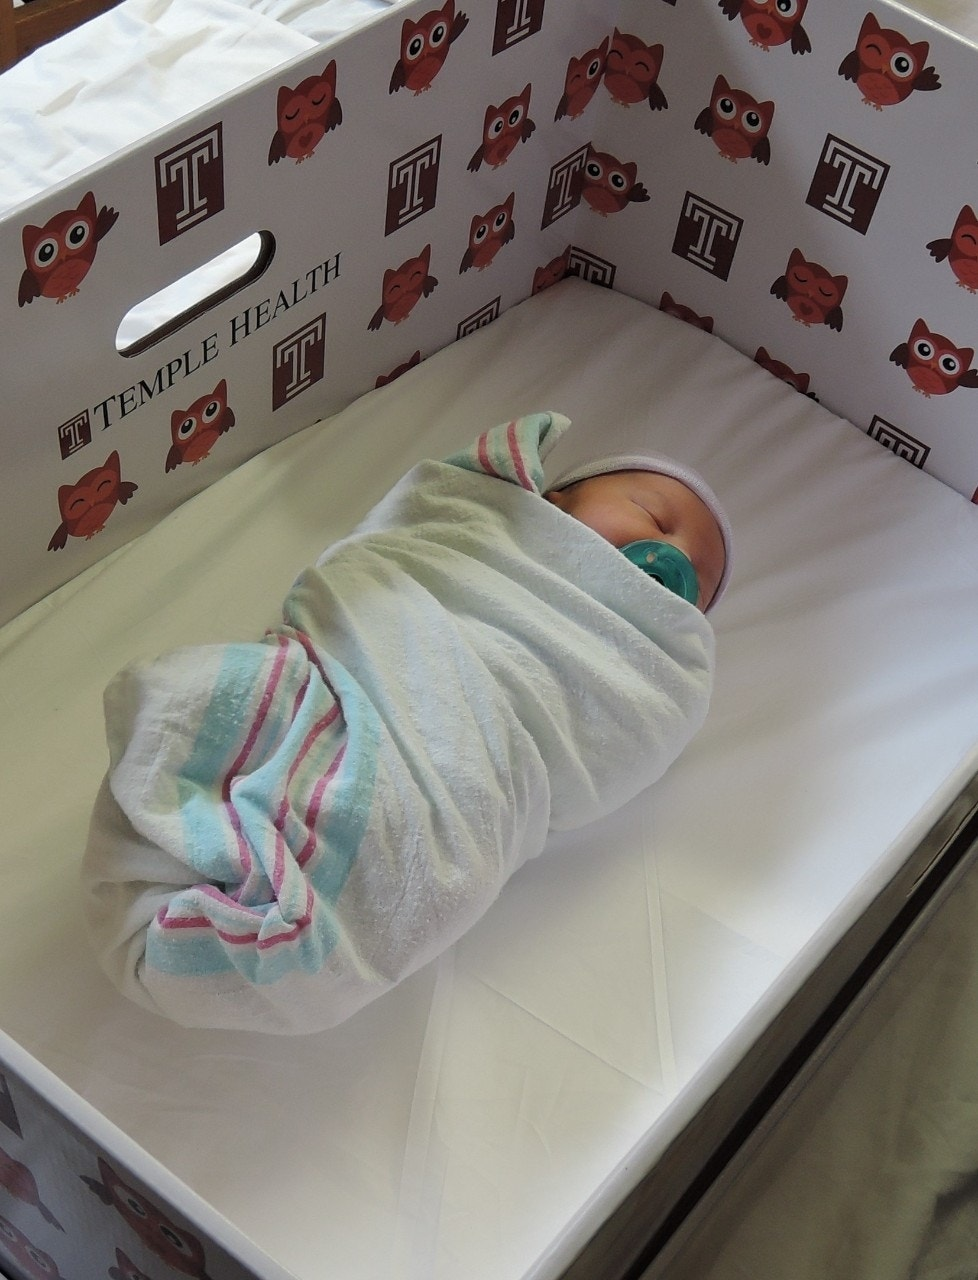 Baby bed for parents bed - Philadelphia Hospital Giving Out Baby Boxes To Promote Safe Newborn Sleep Fox News